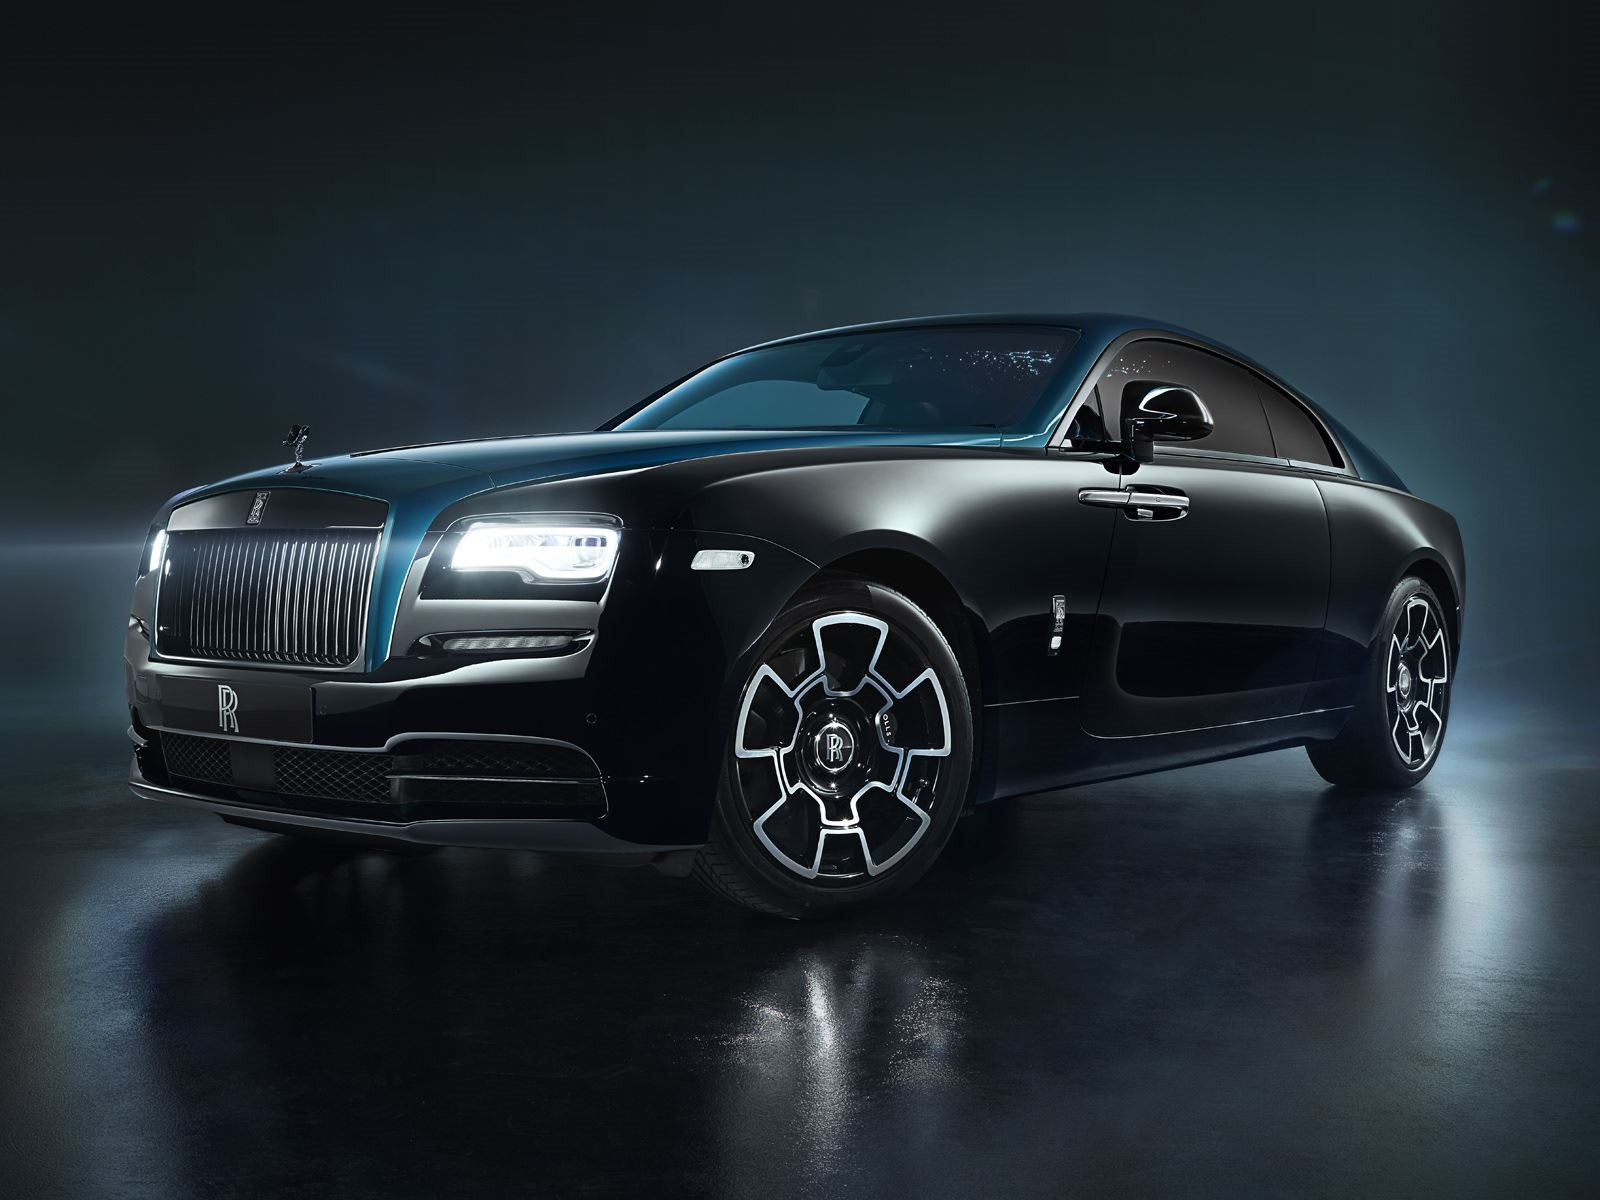 Rolls Royce Wraith And Dawn Adamas Black Badge Collection Revealed Carbuzz